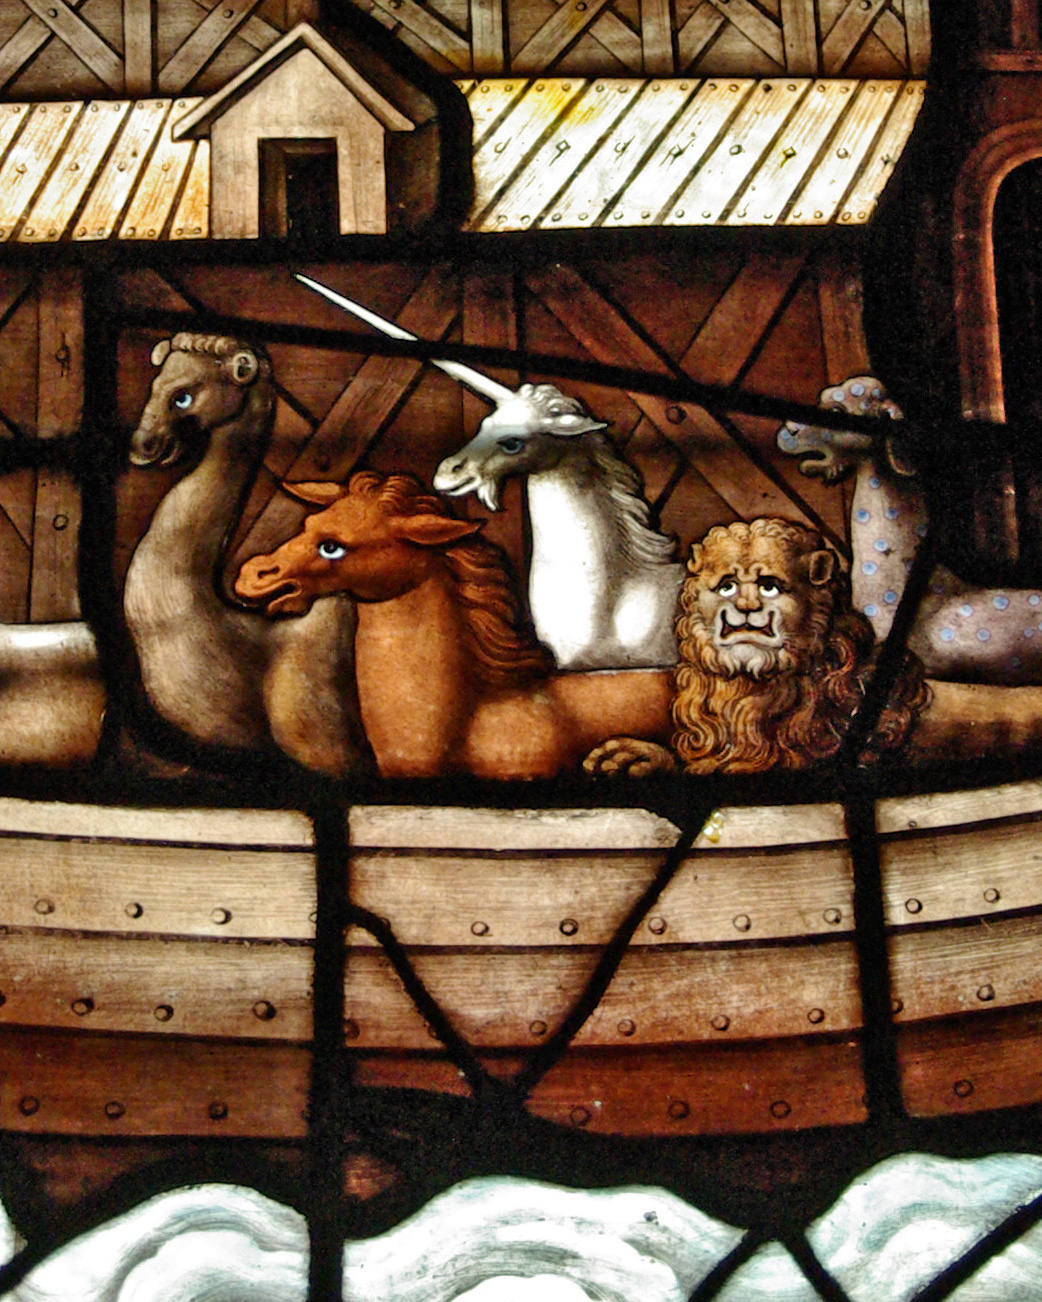 Like the smugly flatulent unicorn on the ark, photographers are an endangered species.    I'm going to call © Peter M. Ferenczi on this as a derivative work. If some undead medieval glass painter has a problem with that, step up, fool.